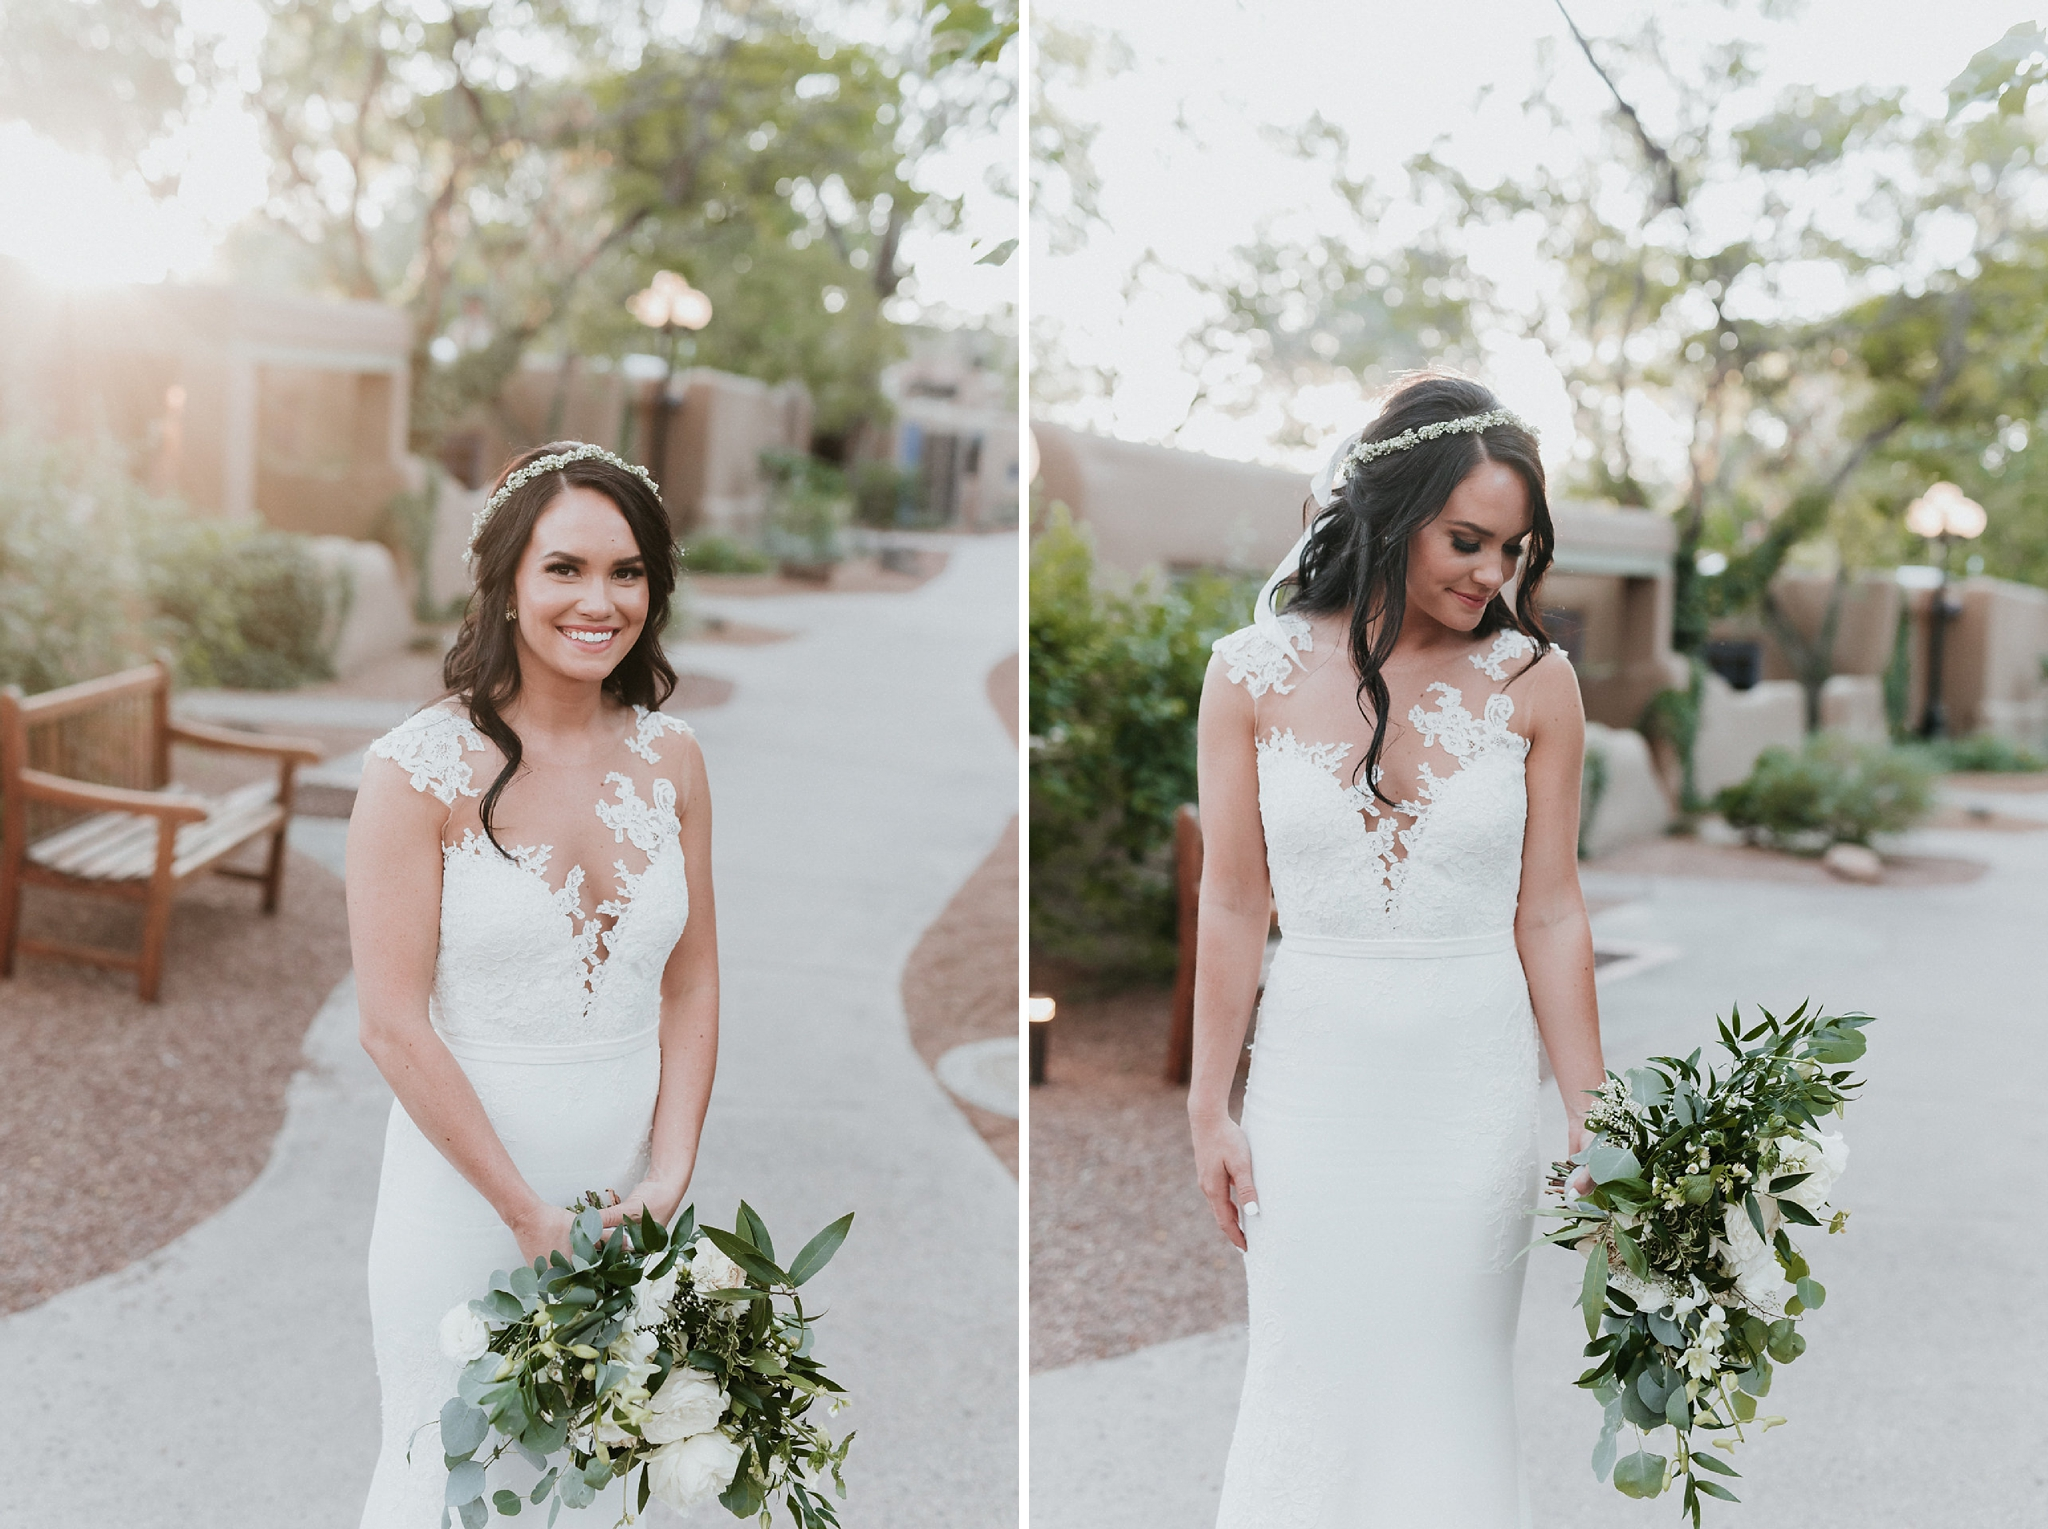 Alicia+lucia+photography+-+albuquerque+wedding+photographer+-+santa+fe+wedding+photography+-+new+mexico+wedding+photographer+-+new+mexico+wedding+-+wedding+makeup+-+makeup+artist+-+wedding+makeup+artist+-+bridal+makeup_0046.jpg